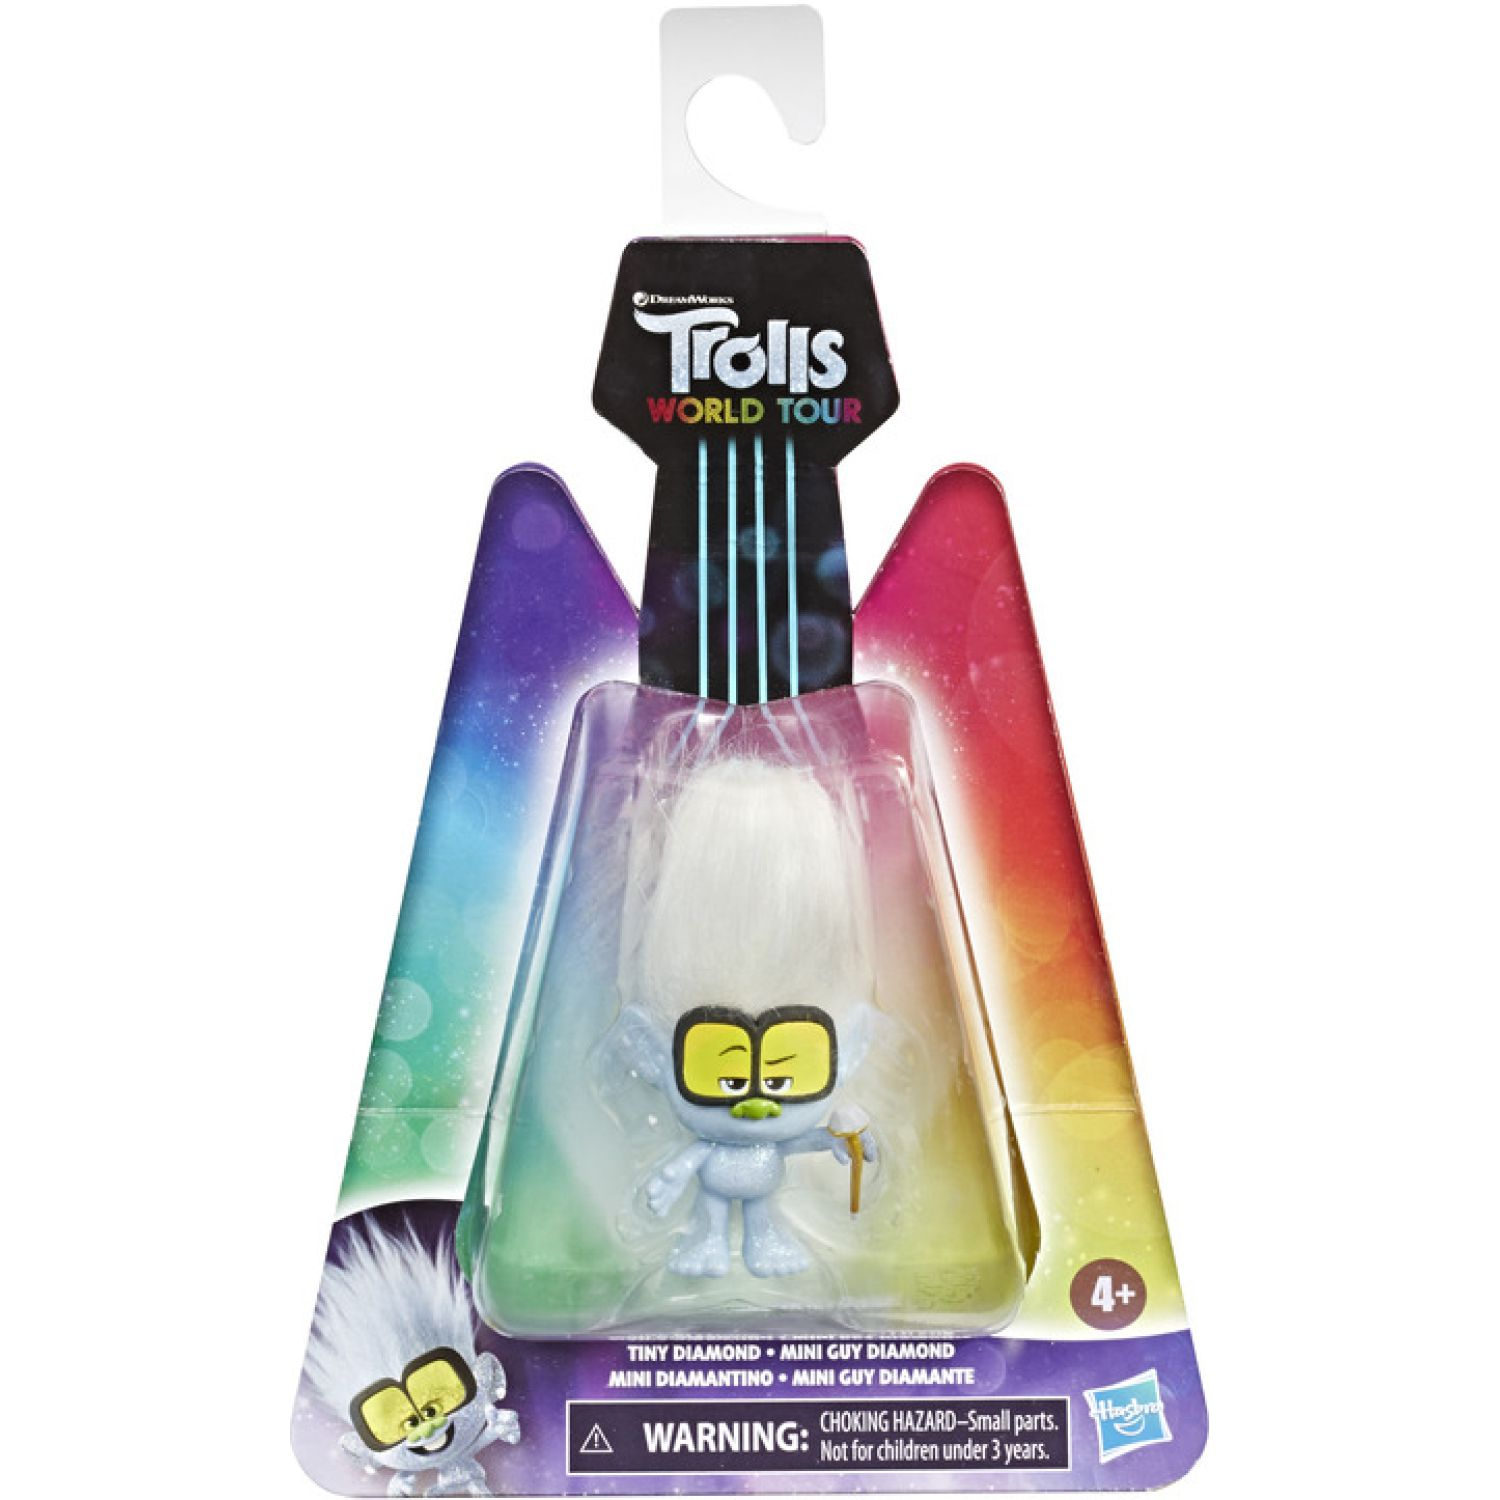 Trolls TRS WORLD TOUR TINY DIAMOND Varios muñecas